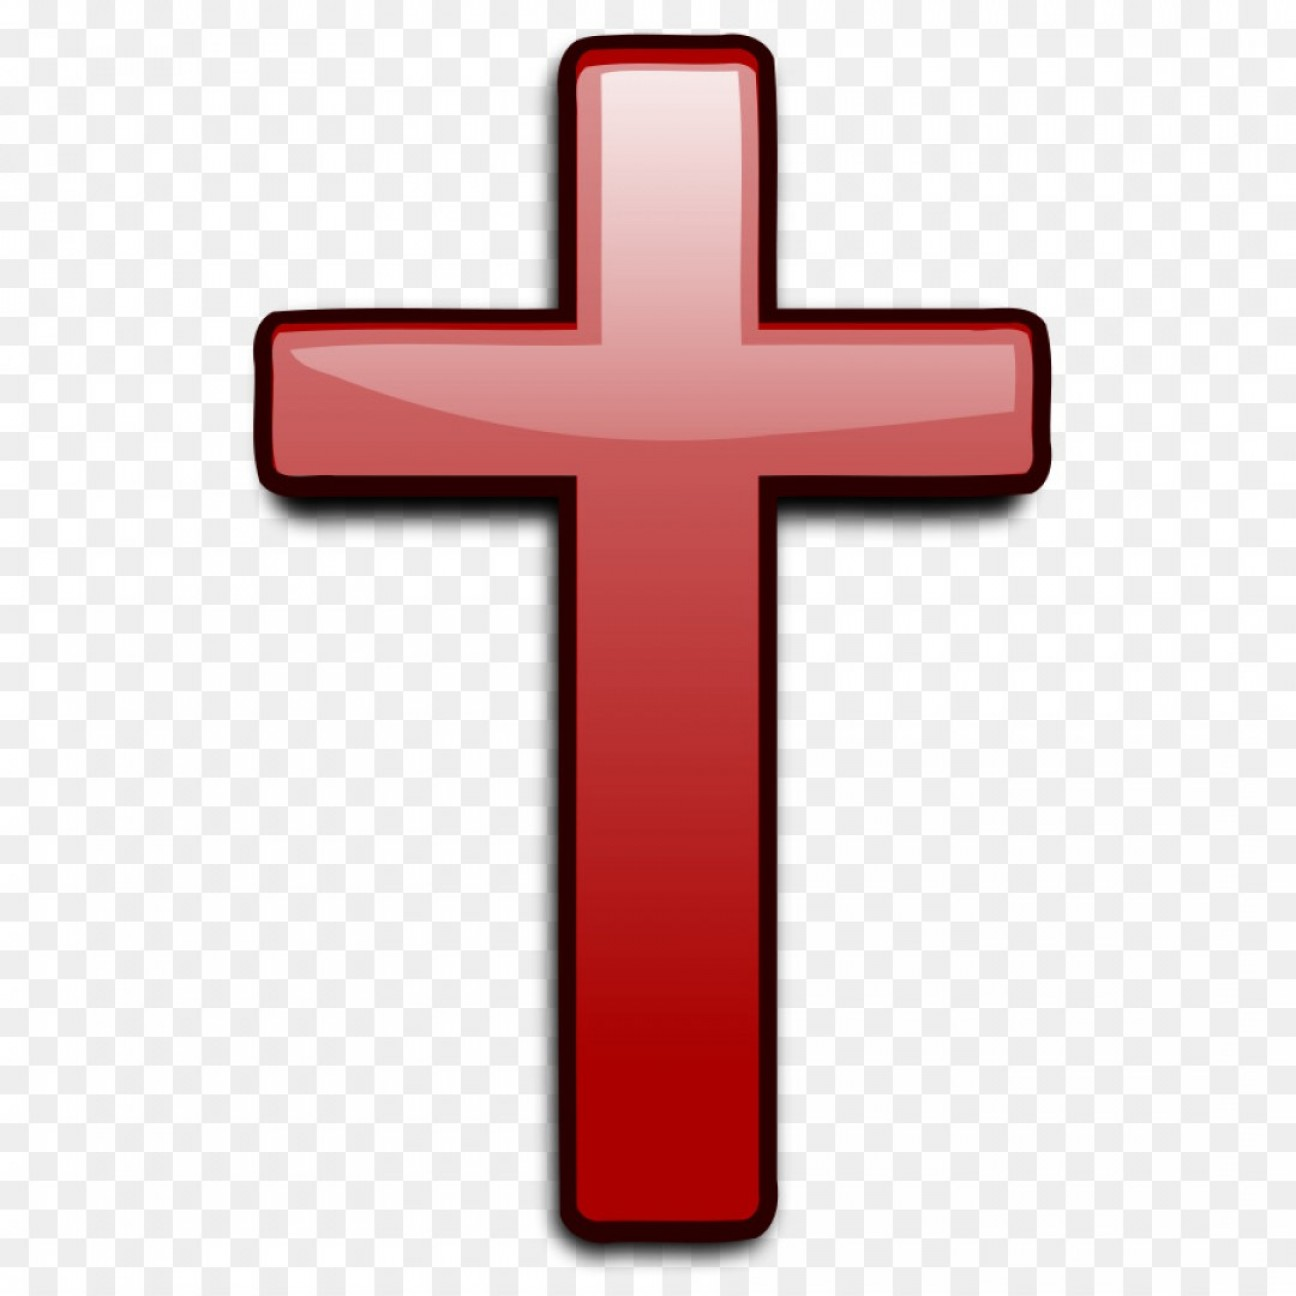 Png Christian Cross Scalable Vector Graphics Clip Art.